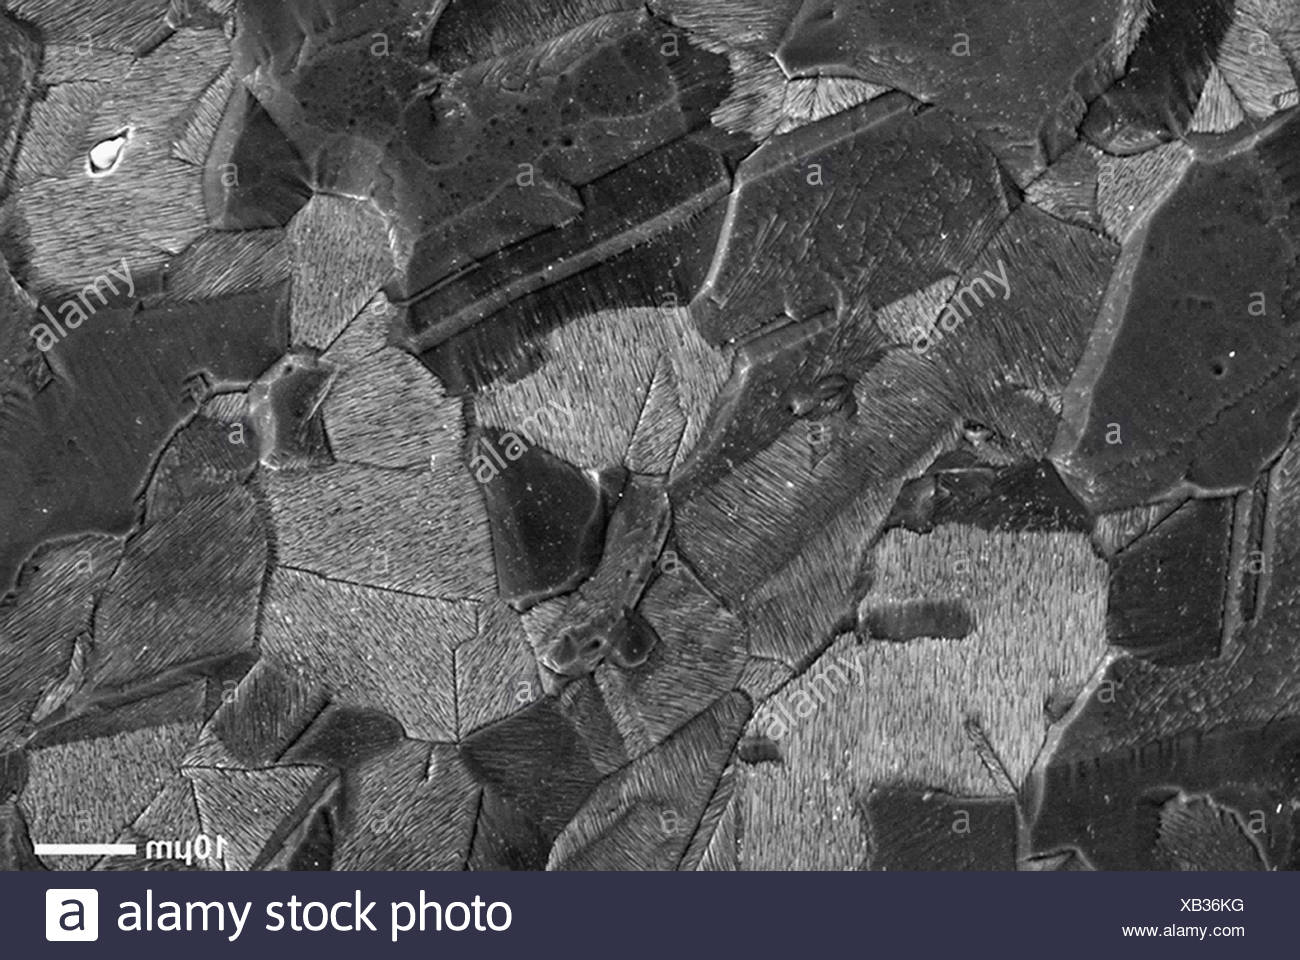 Scanning Electron Micrograph of fracture surface of stainless steel, rouged and etched sample - Stock Image